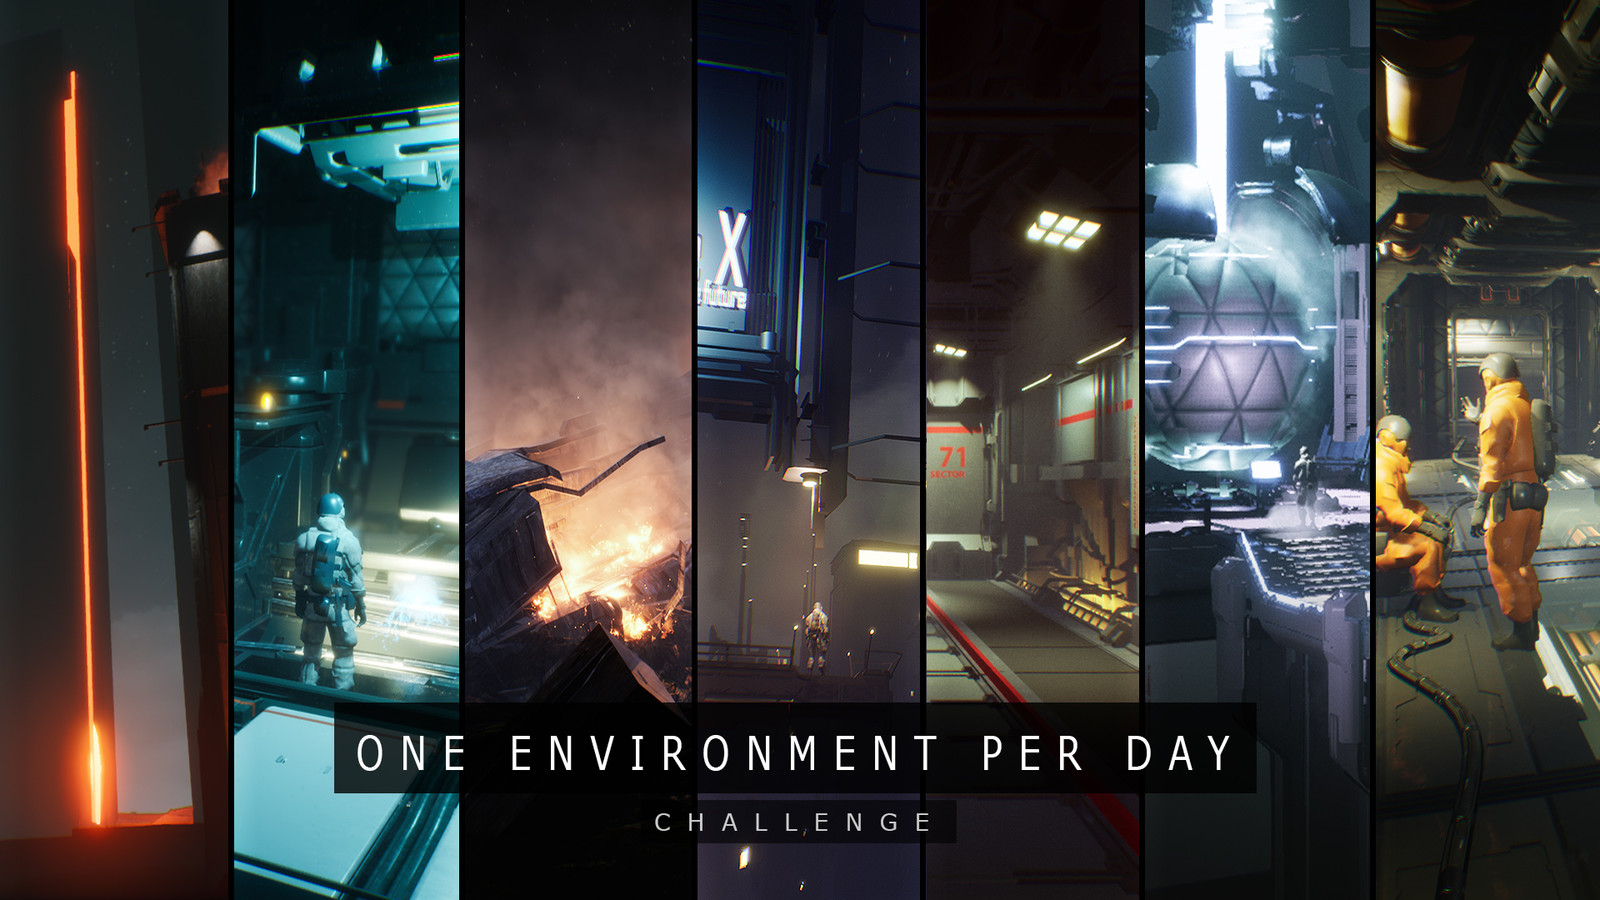 """One environment per day"" challenge."